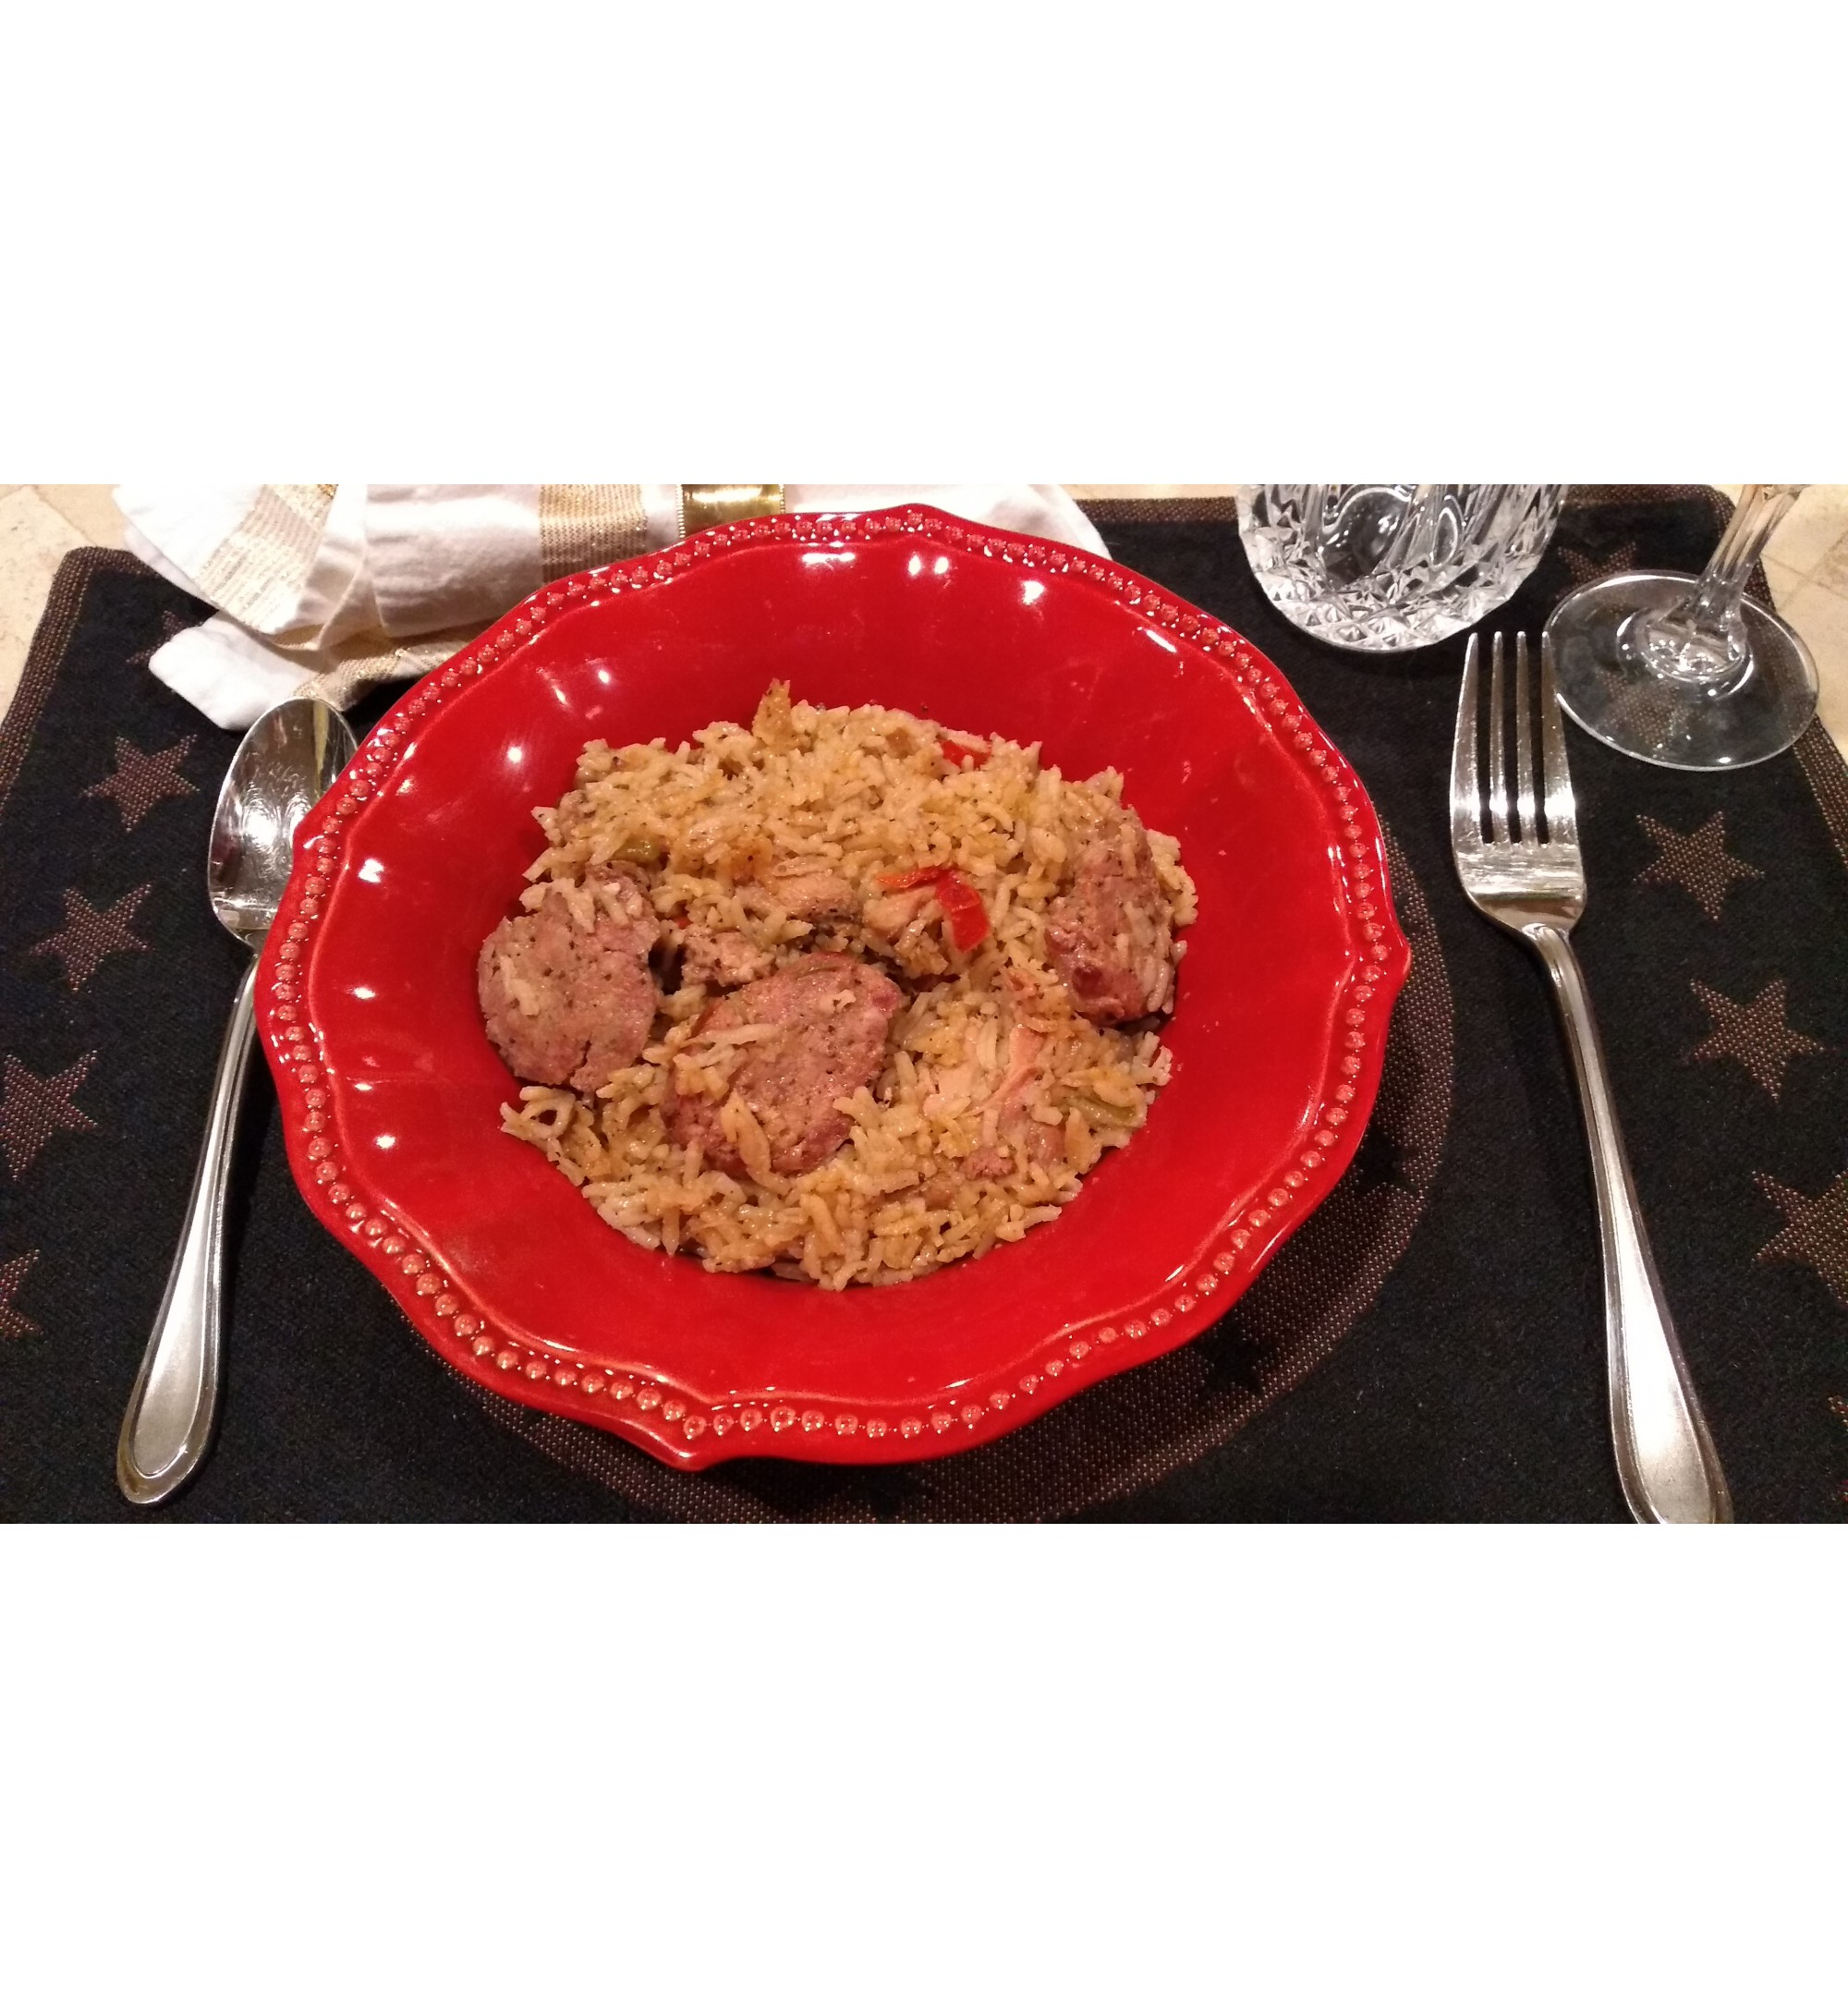 Jambalaya Chicken & Cajun Sausage combined with celery, peppers, onions,  and seasonings   - A Family's favorite